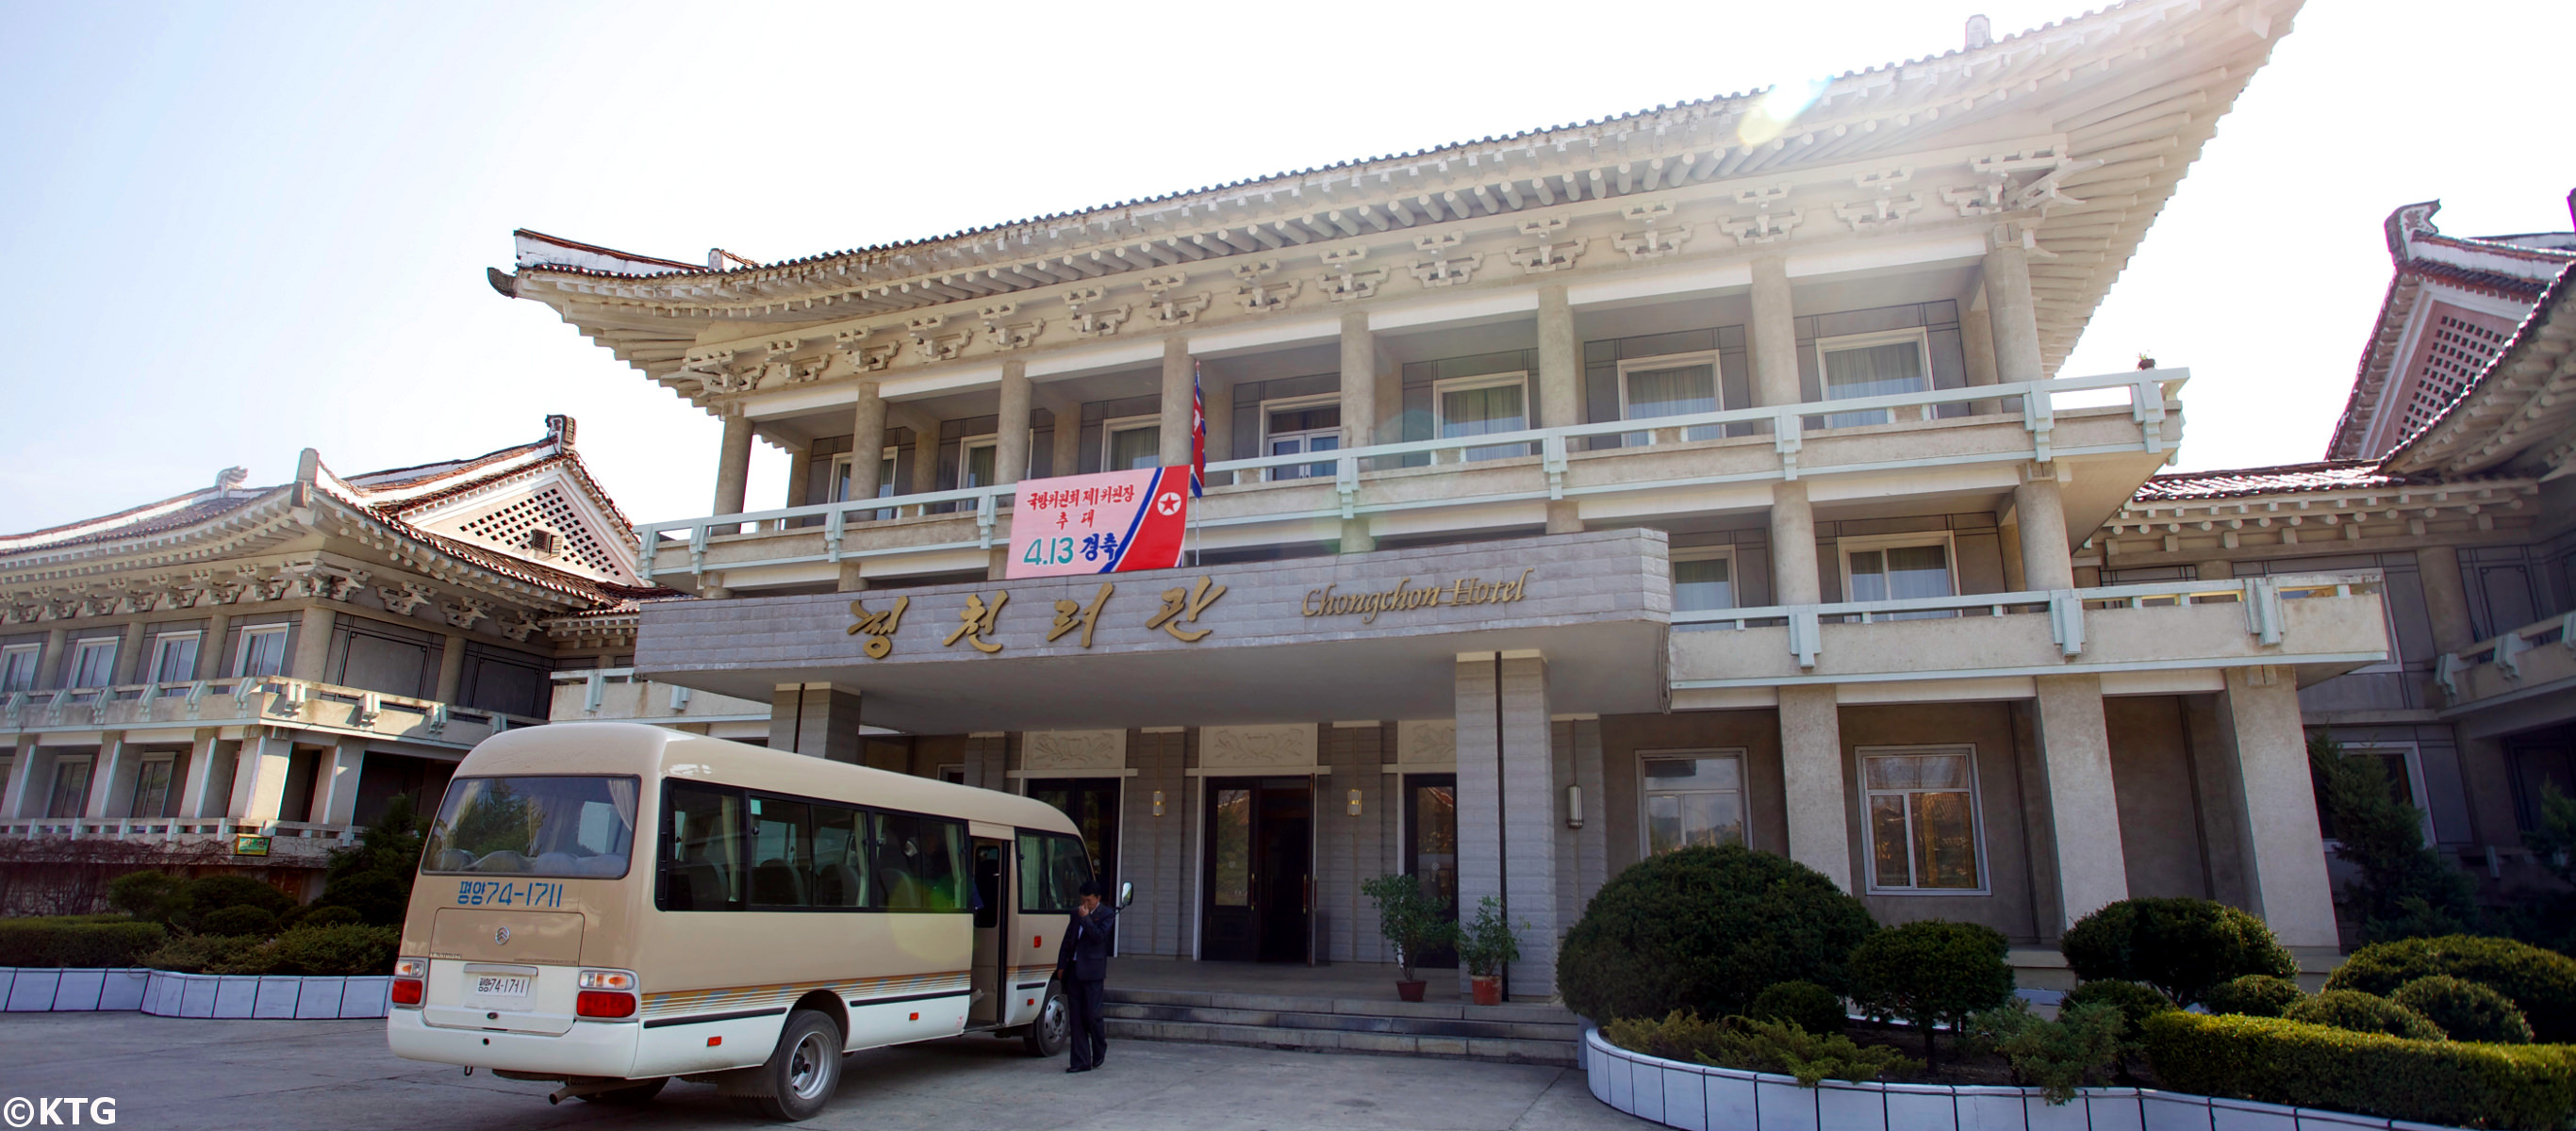 The Chongchon Hotel is a second class, low budget hotel in Hyangsan Town, North Korea (DPRK). Trip arranged by KTG Tours